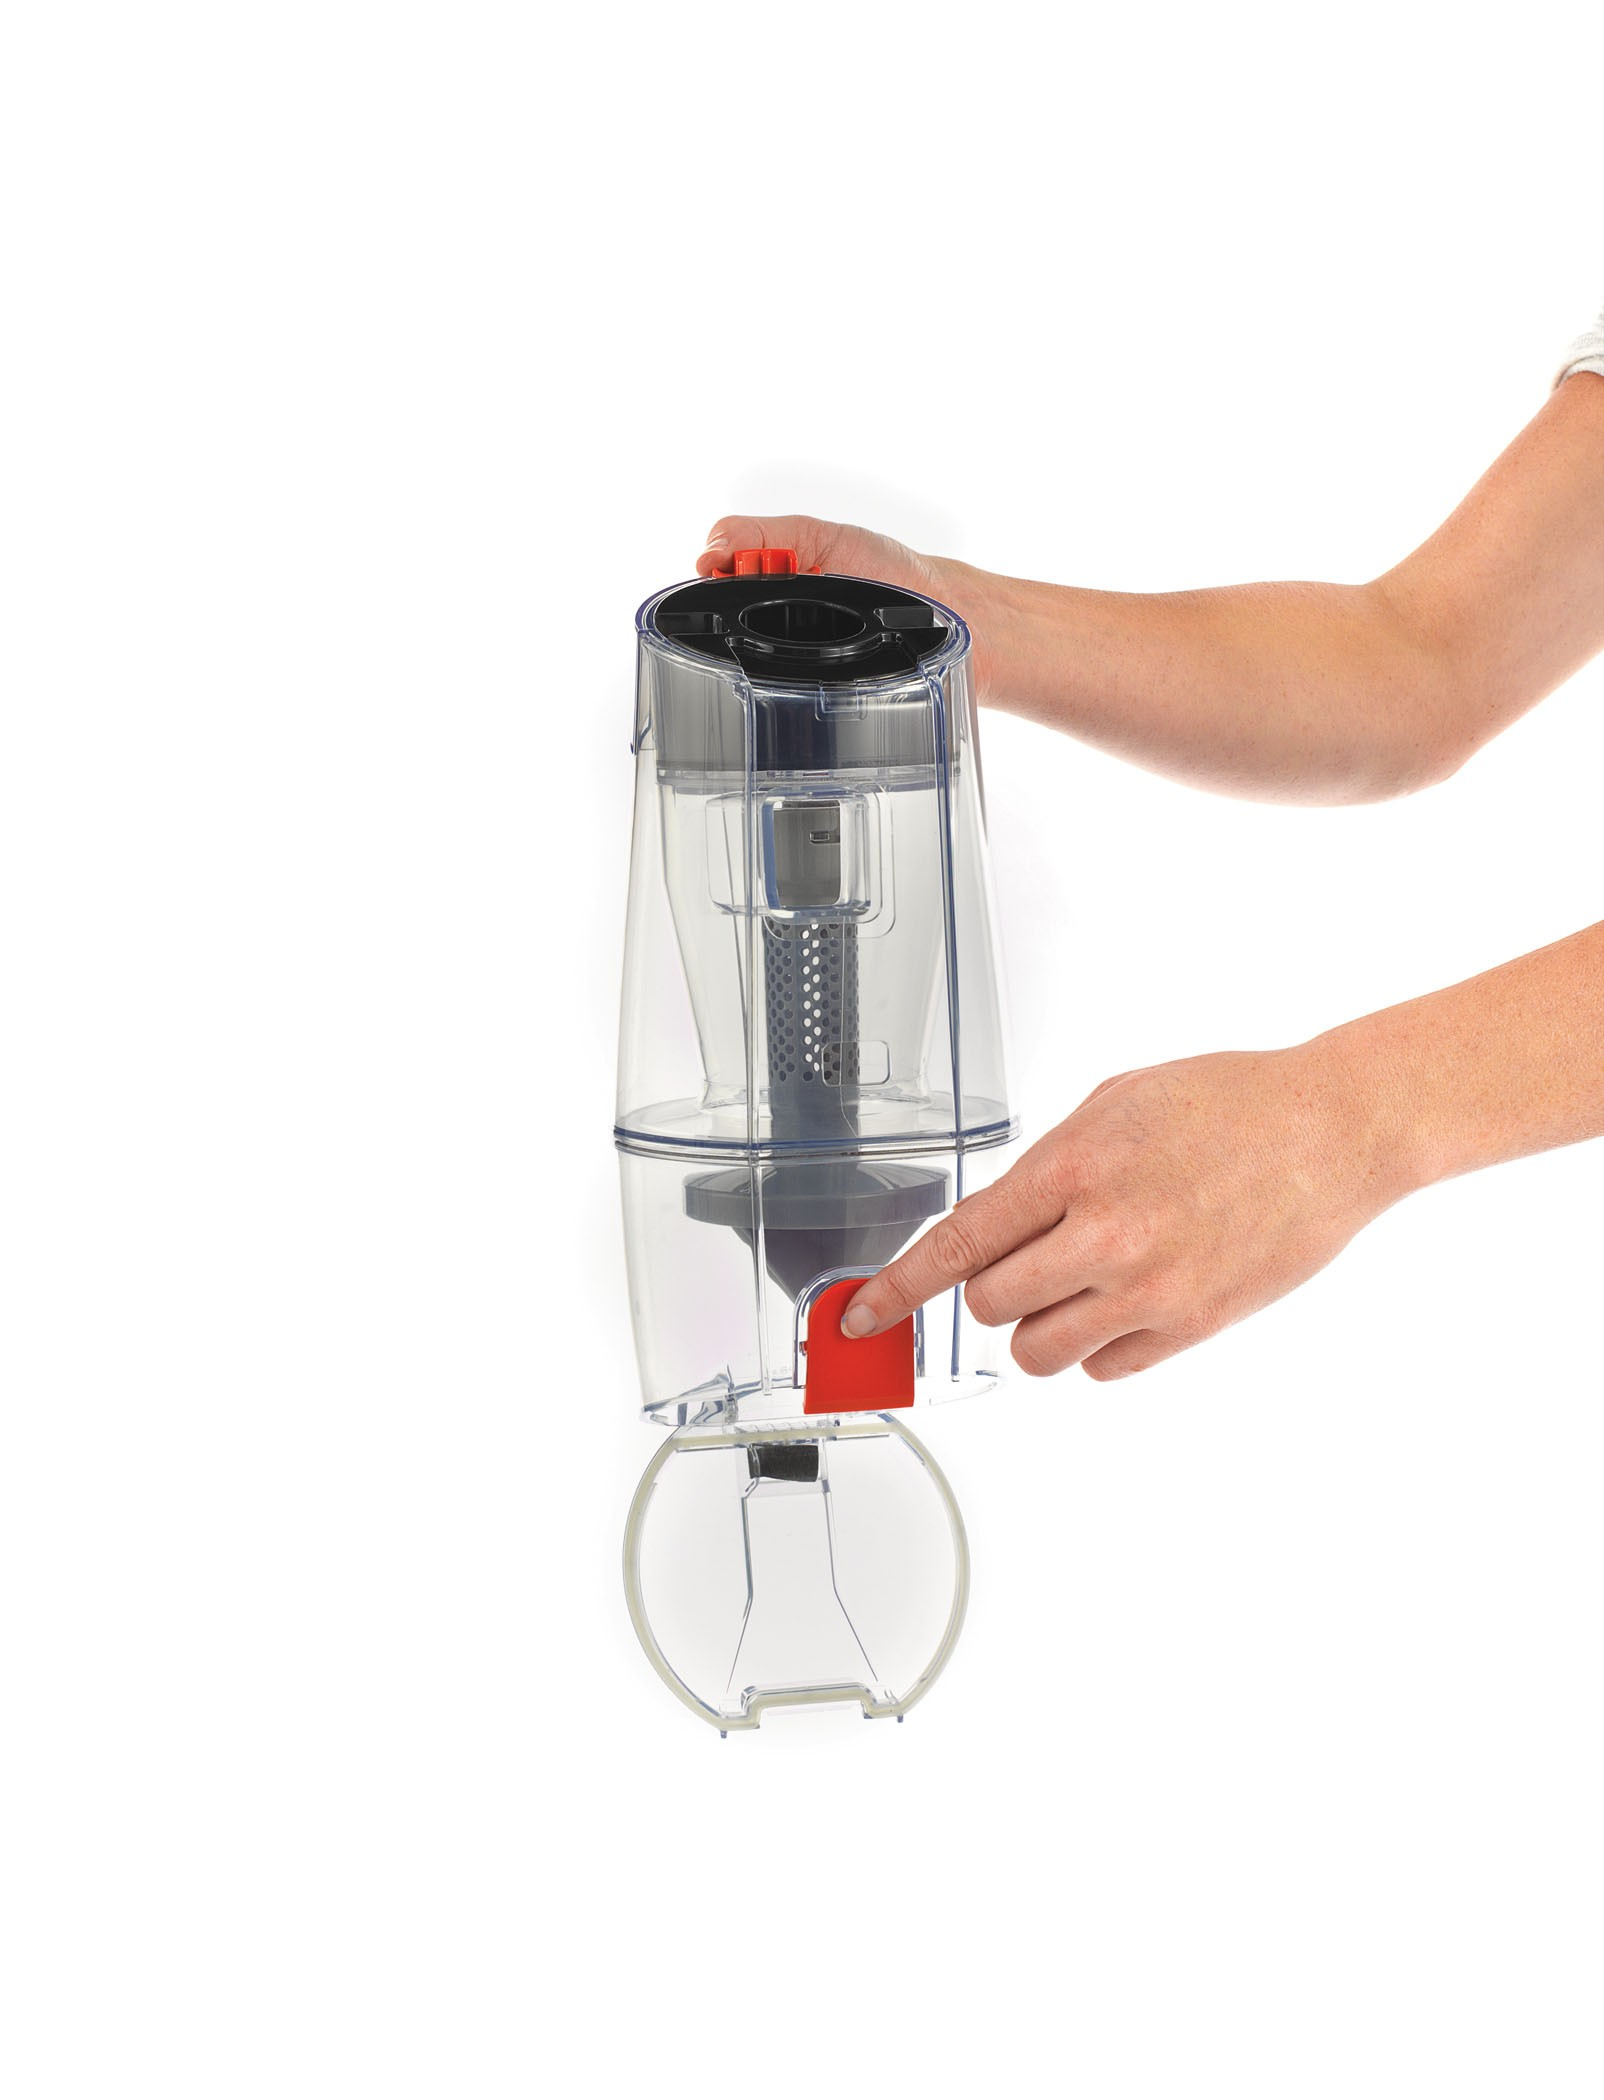 TaskVac Commercial Cordless Compact Upright - Dirt Cup